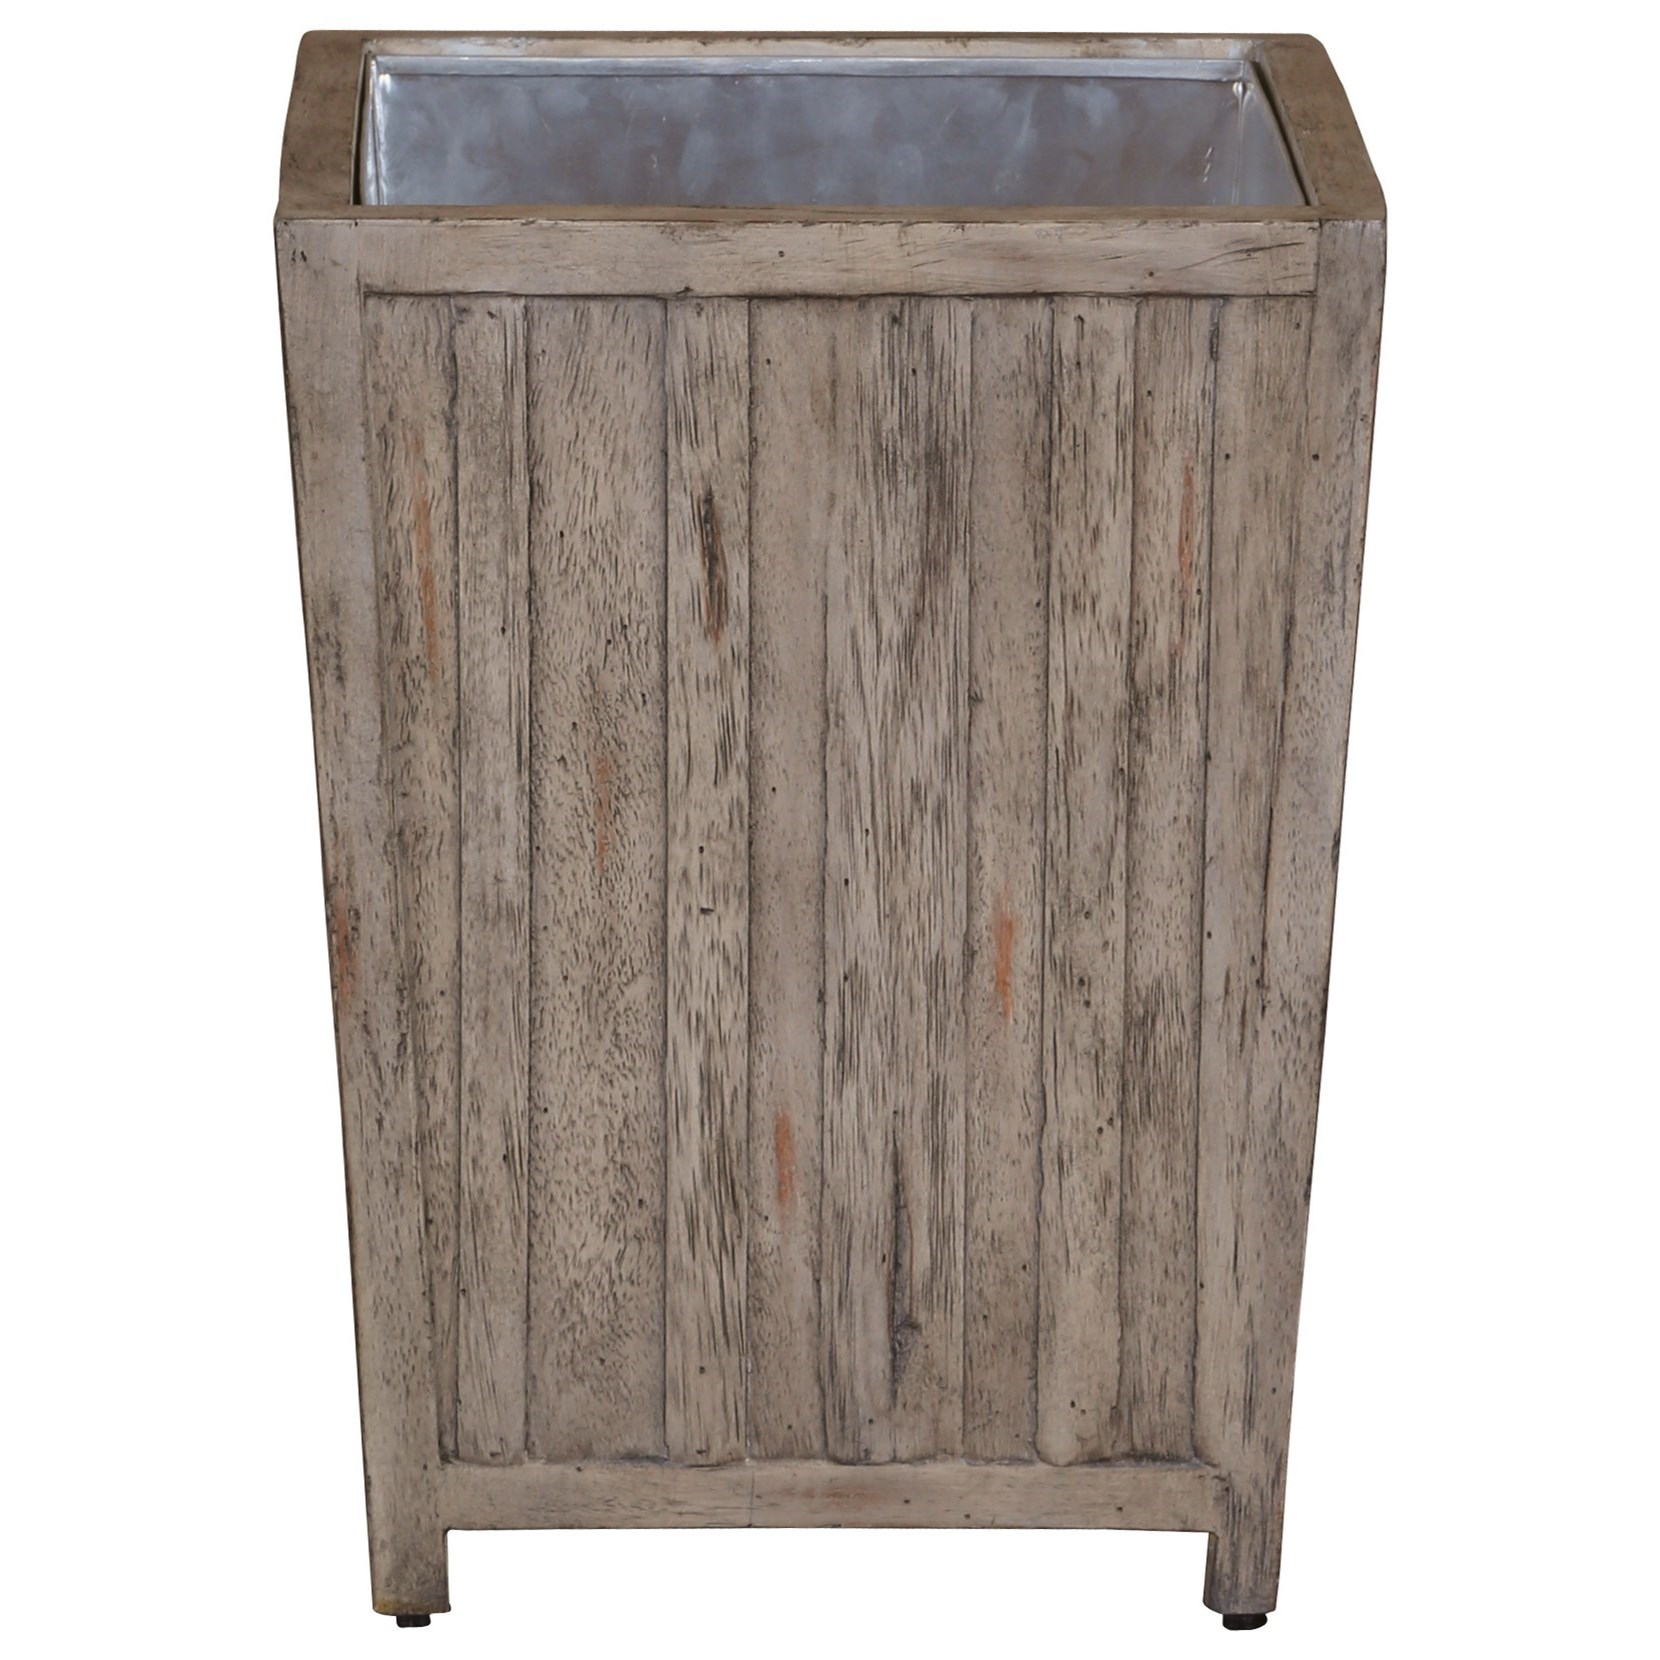 Uttermost Accent Furniture Jira Aged White Waste Bin - Item Number: 25725